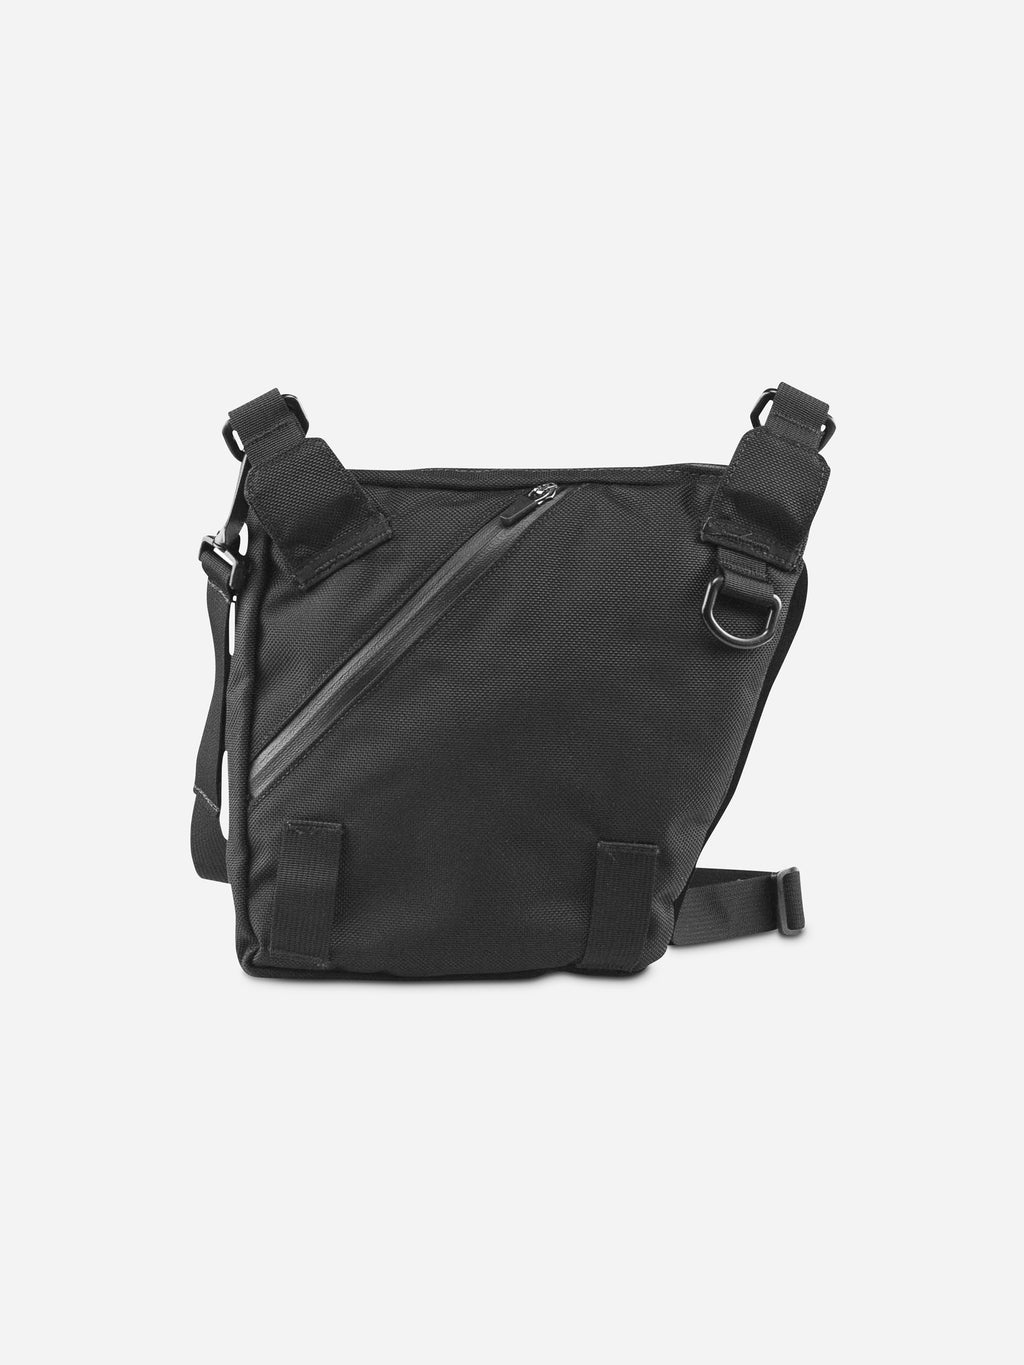 bolstr 1.0 Small Carry EDC Bag